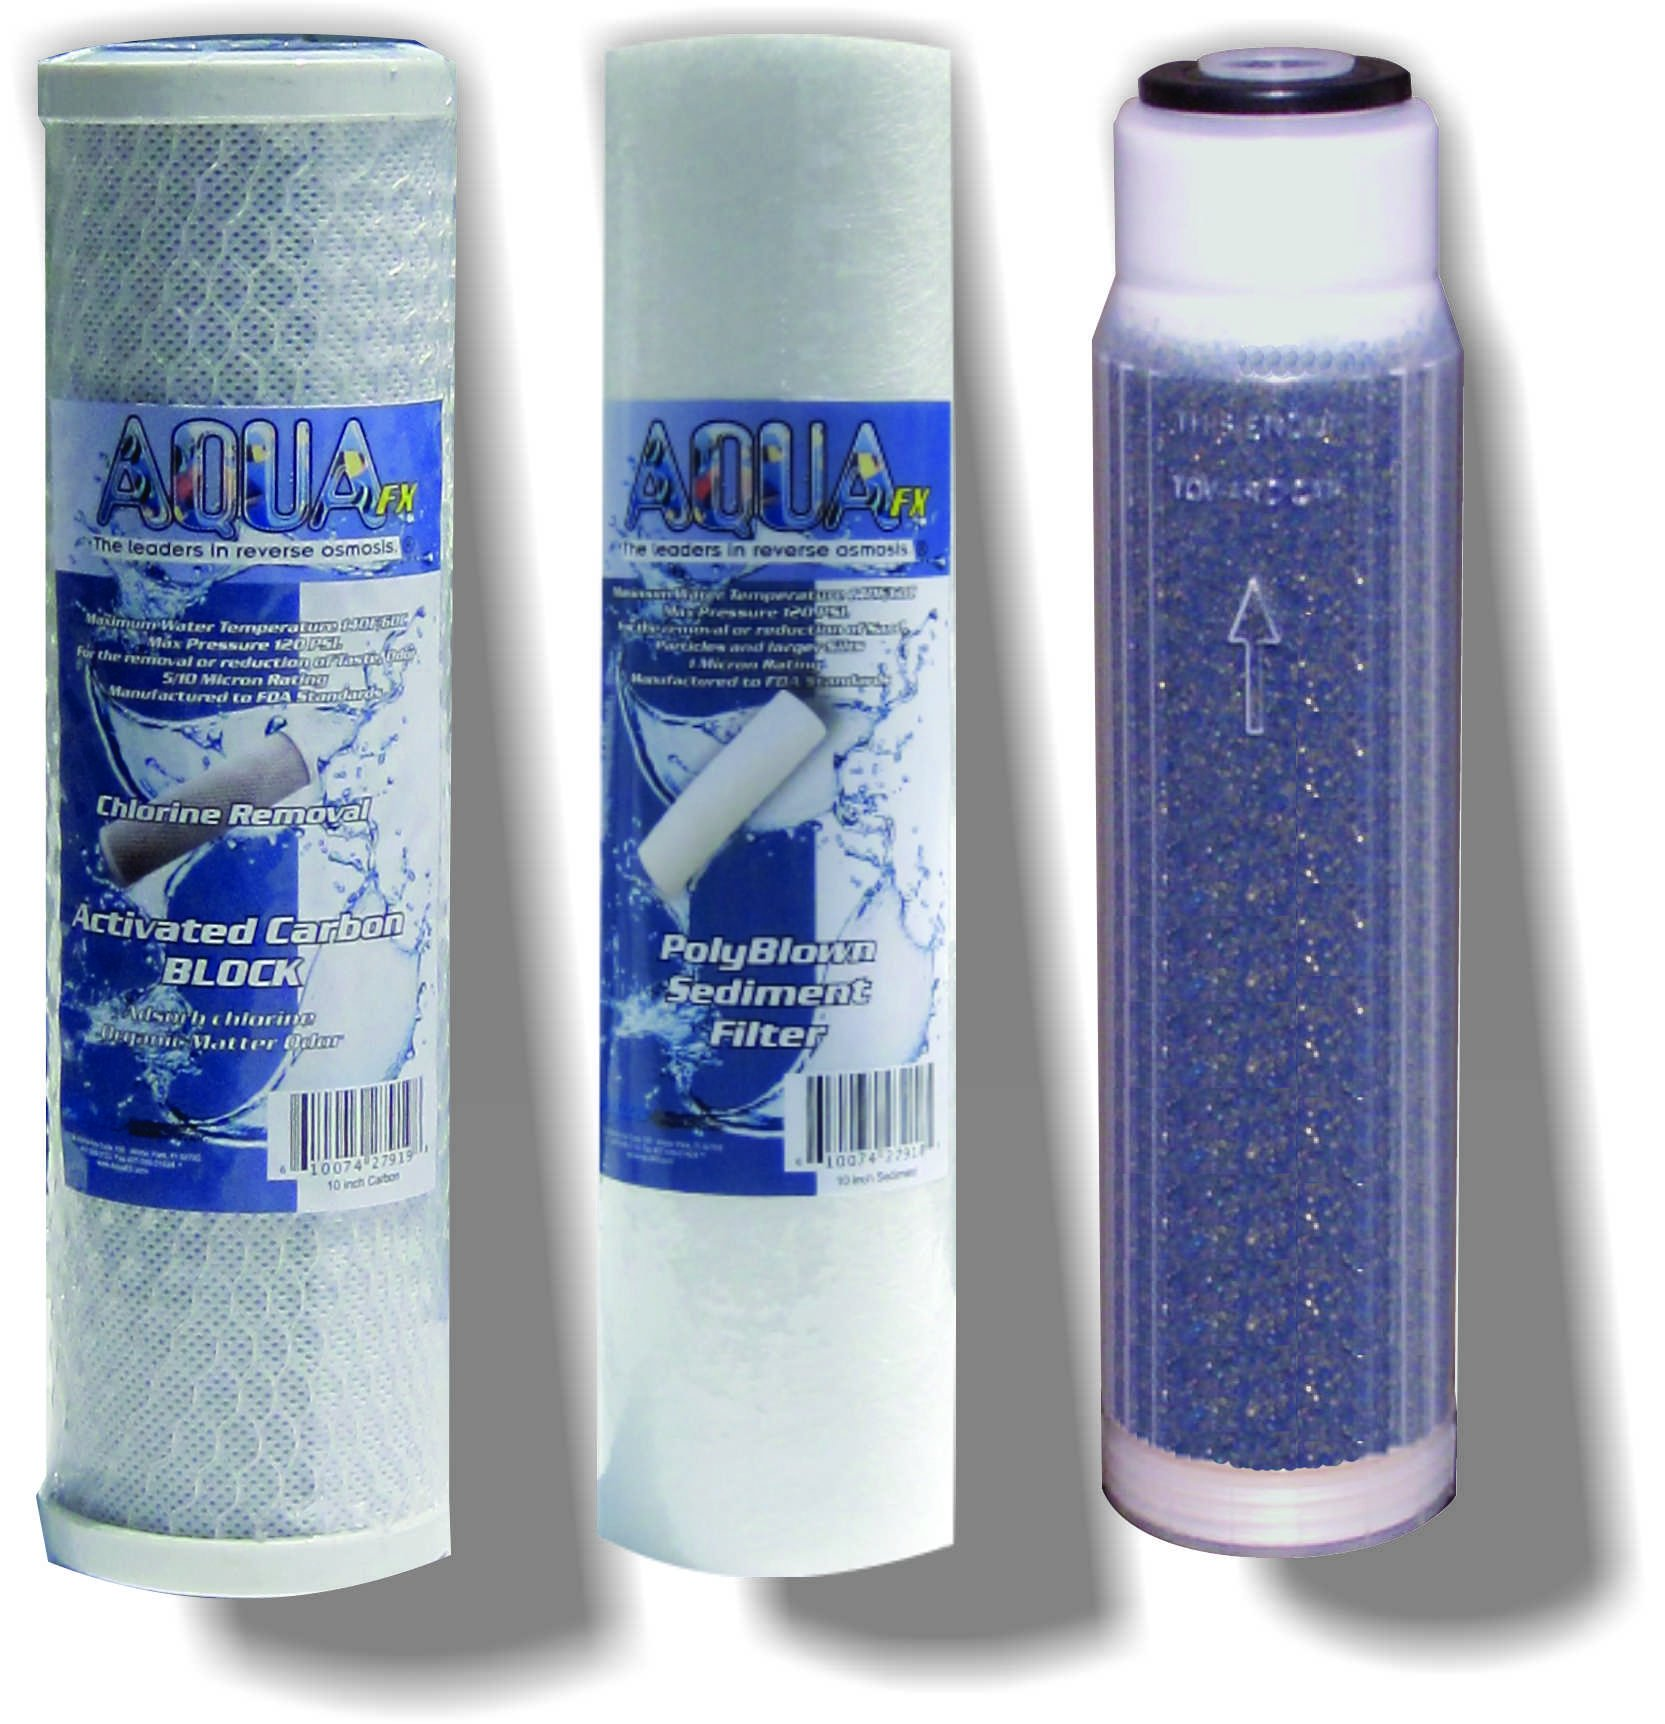 The AquaFX Barracuda Reverse Osmosis 10 inch Replacement Filters by AquaFX The leaders in reverse osmosis.